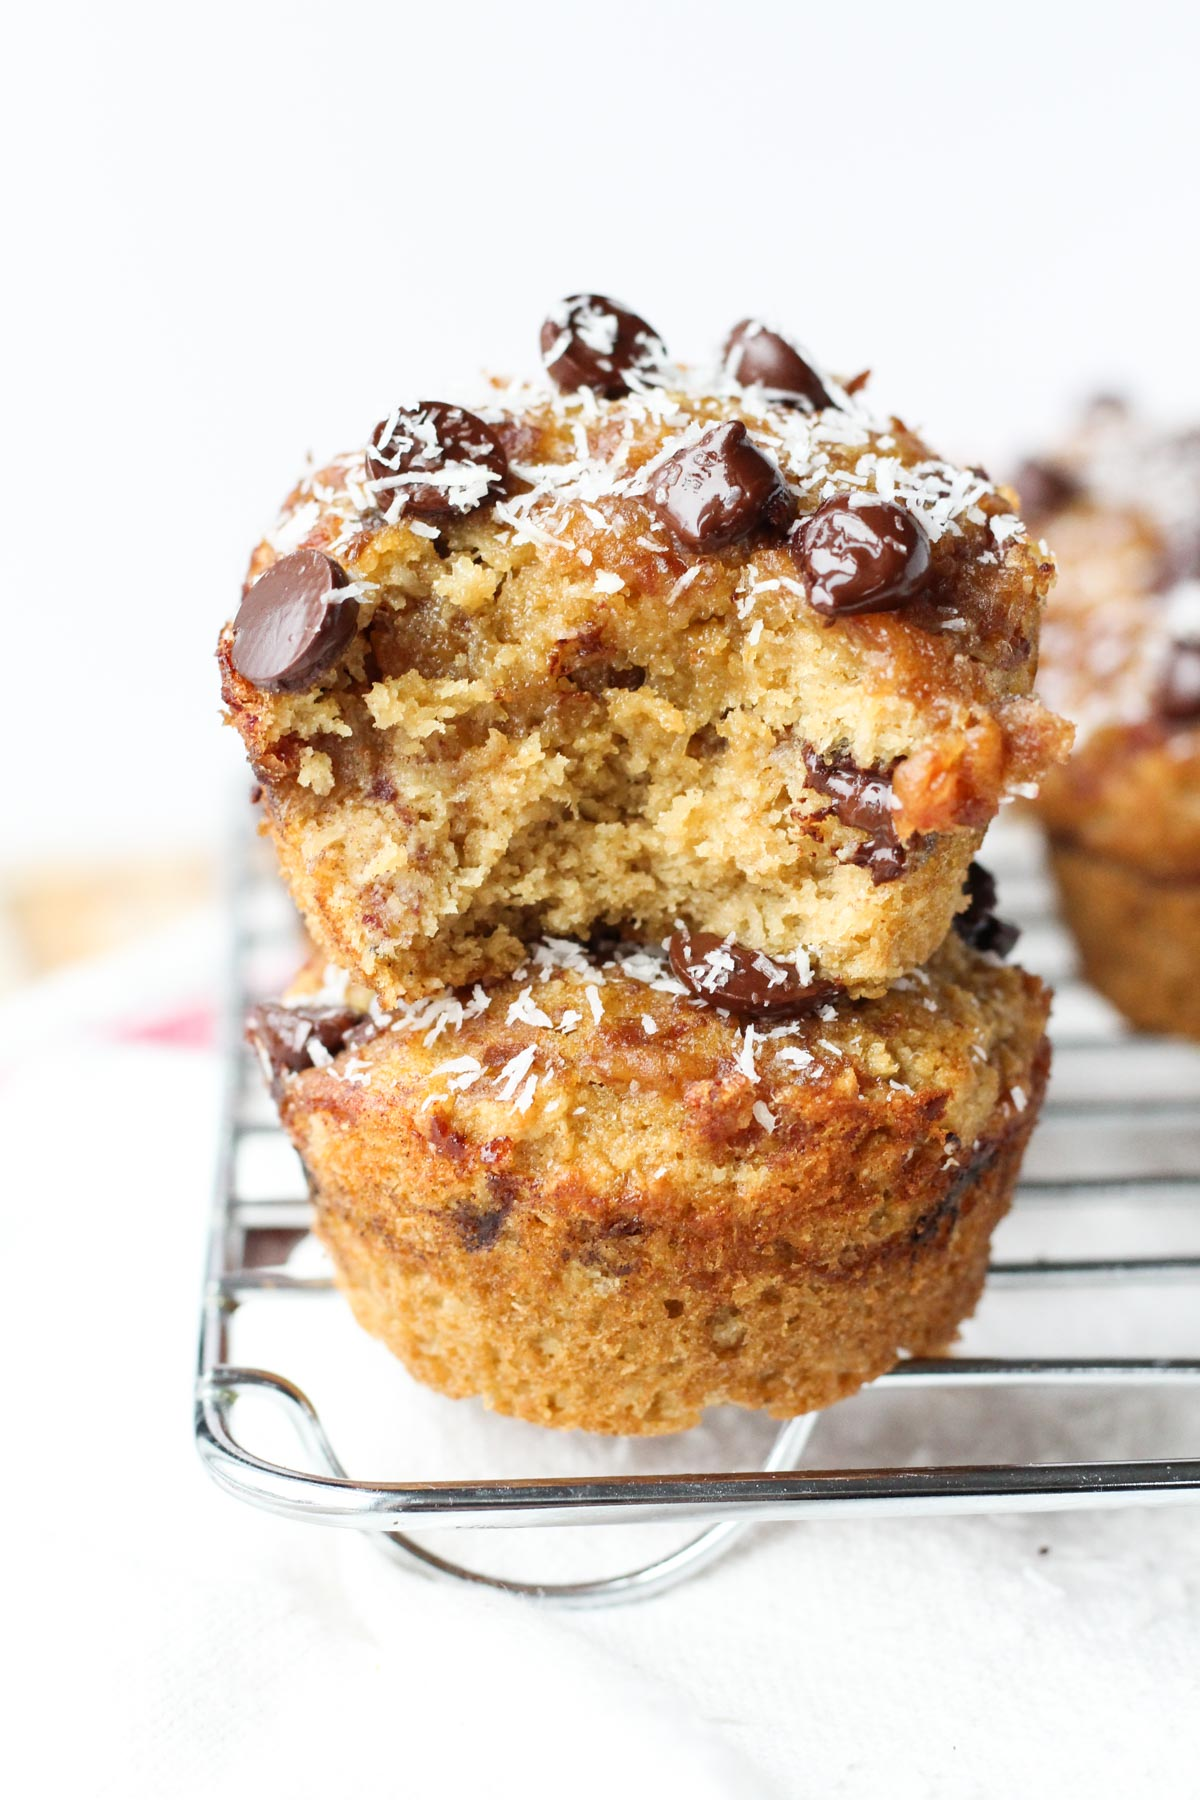 Gluten-Free samoa muffins stacked on top of each other.